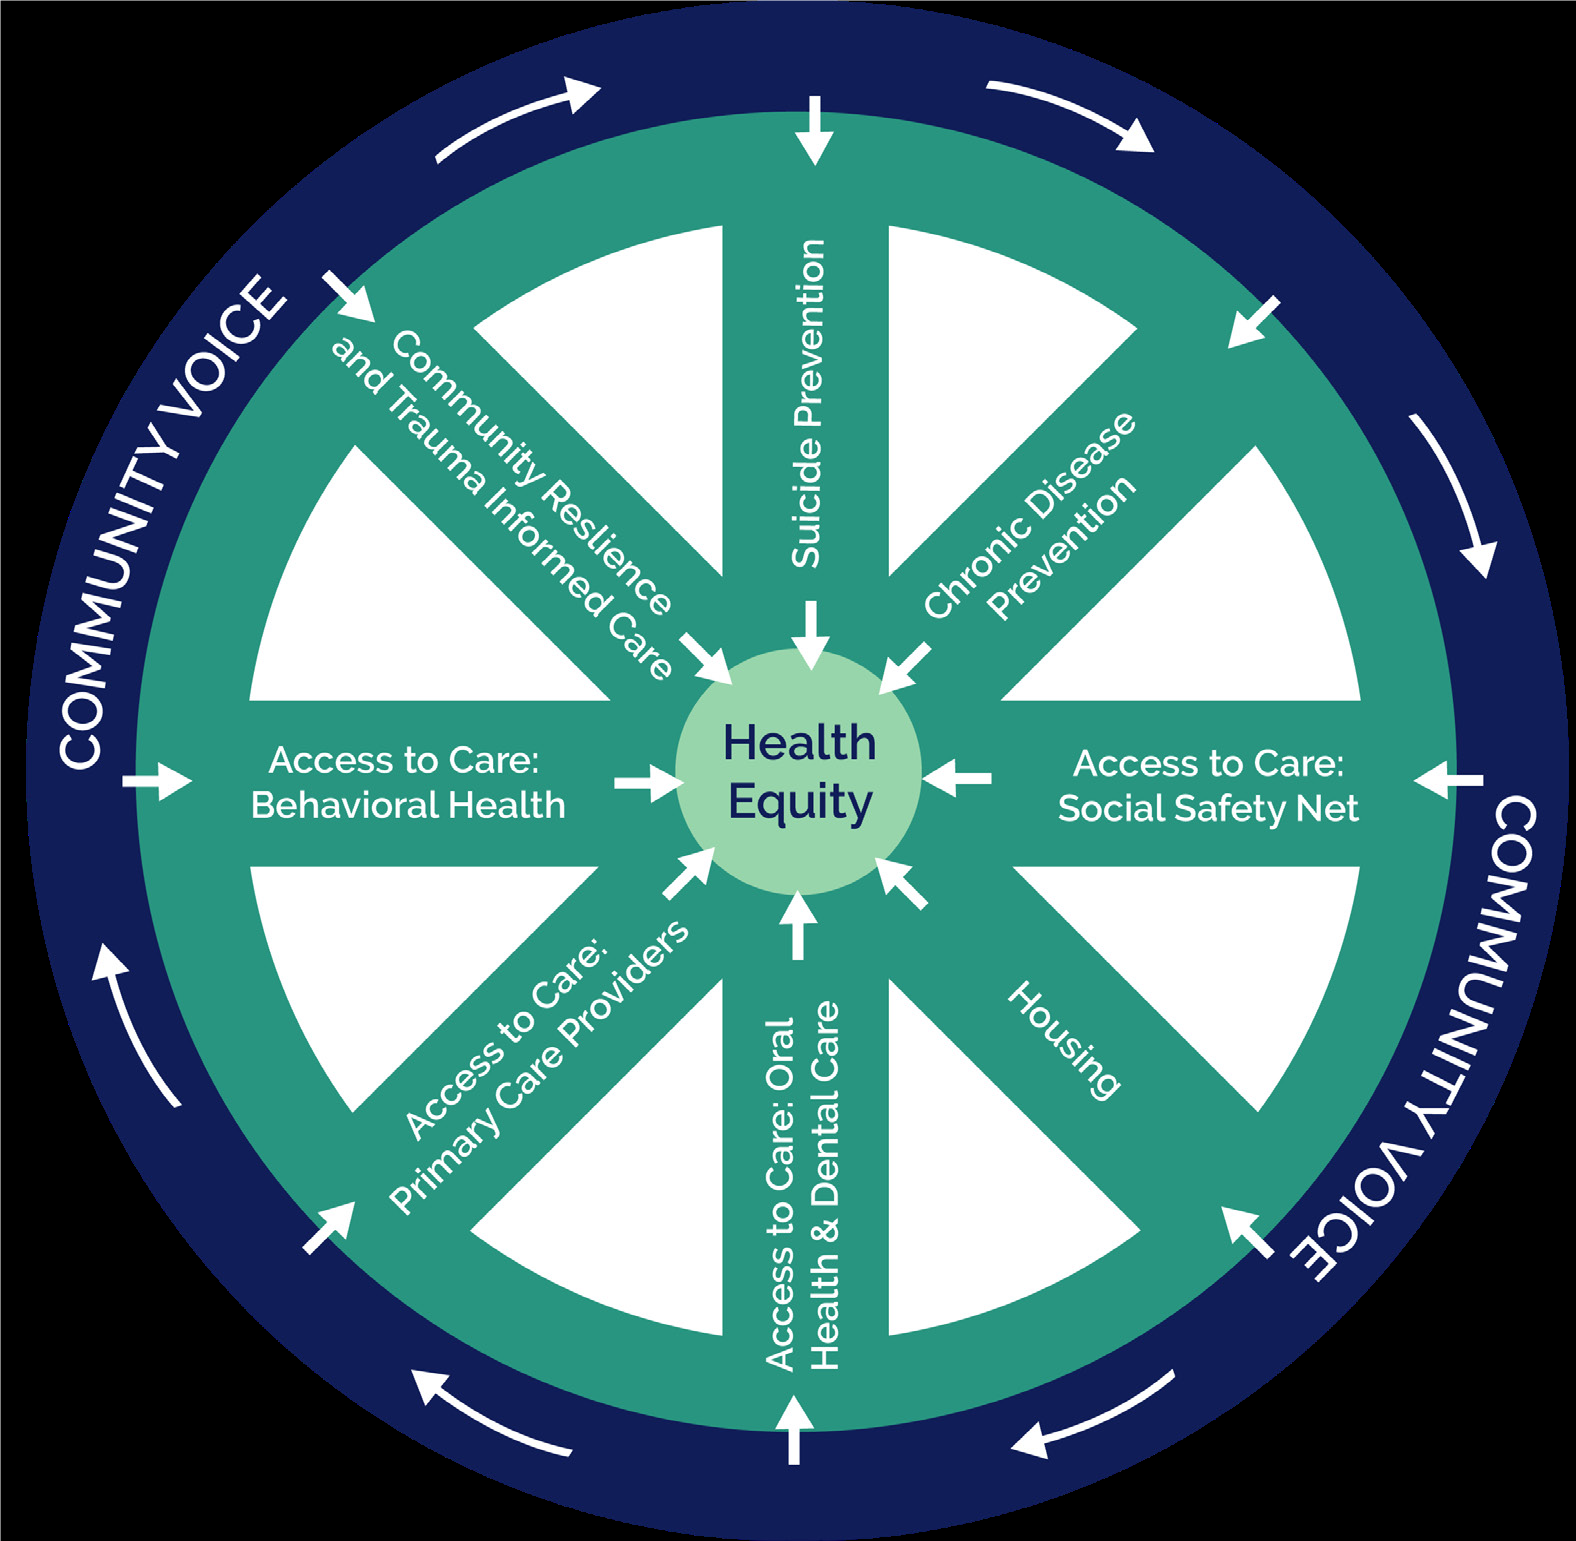 Community Wellness Investment Fund Concept